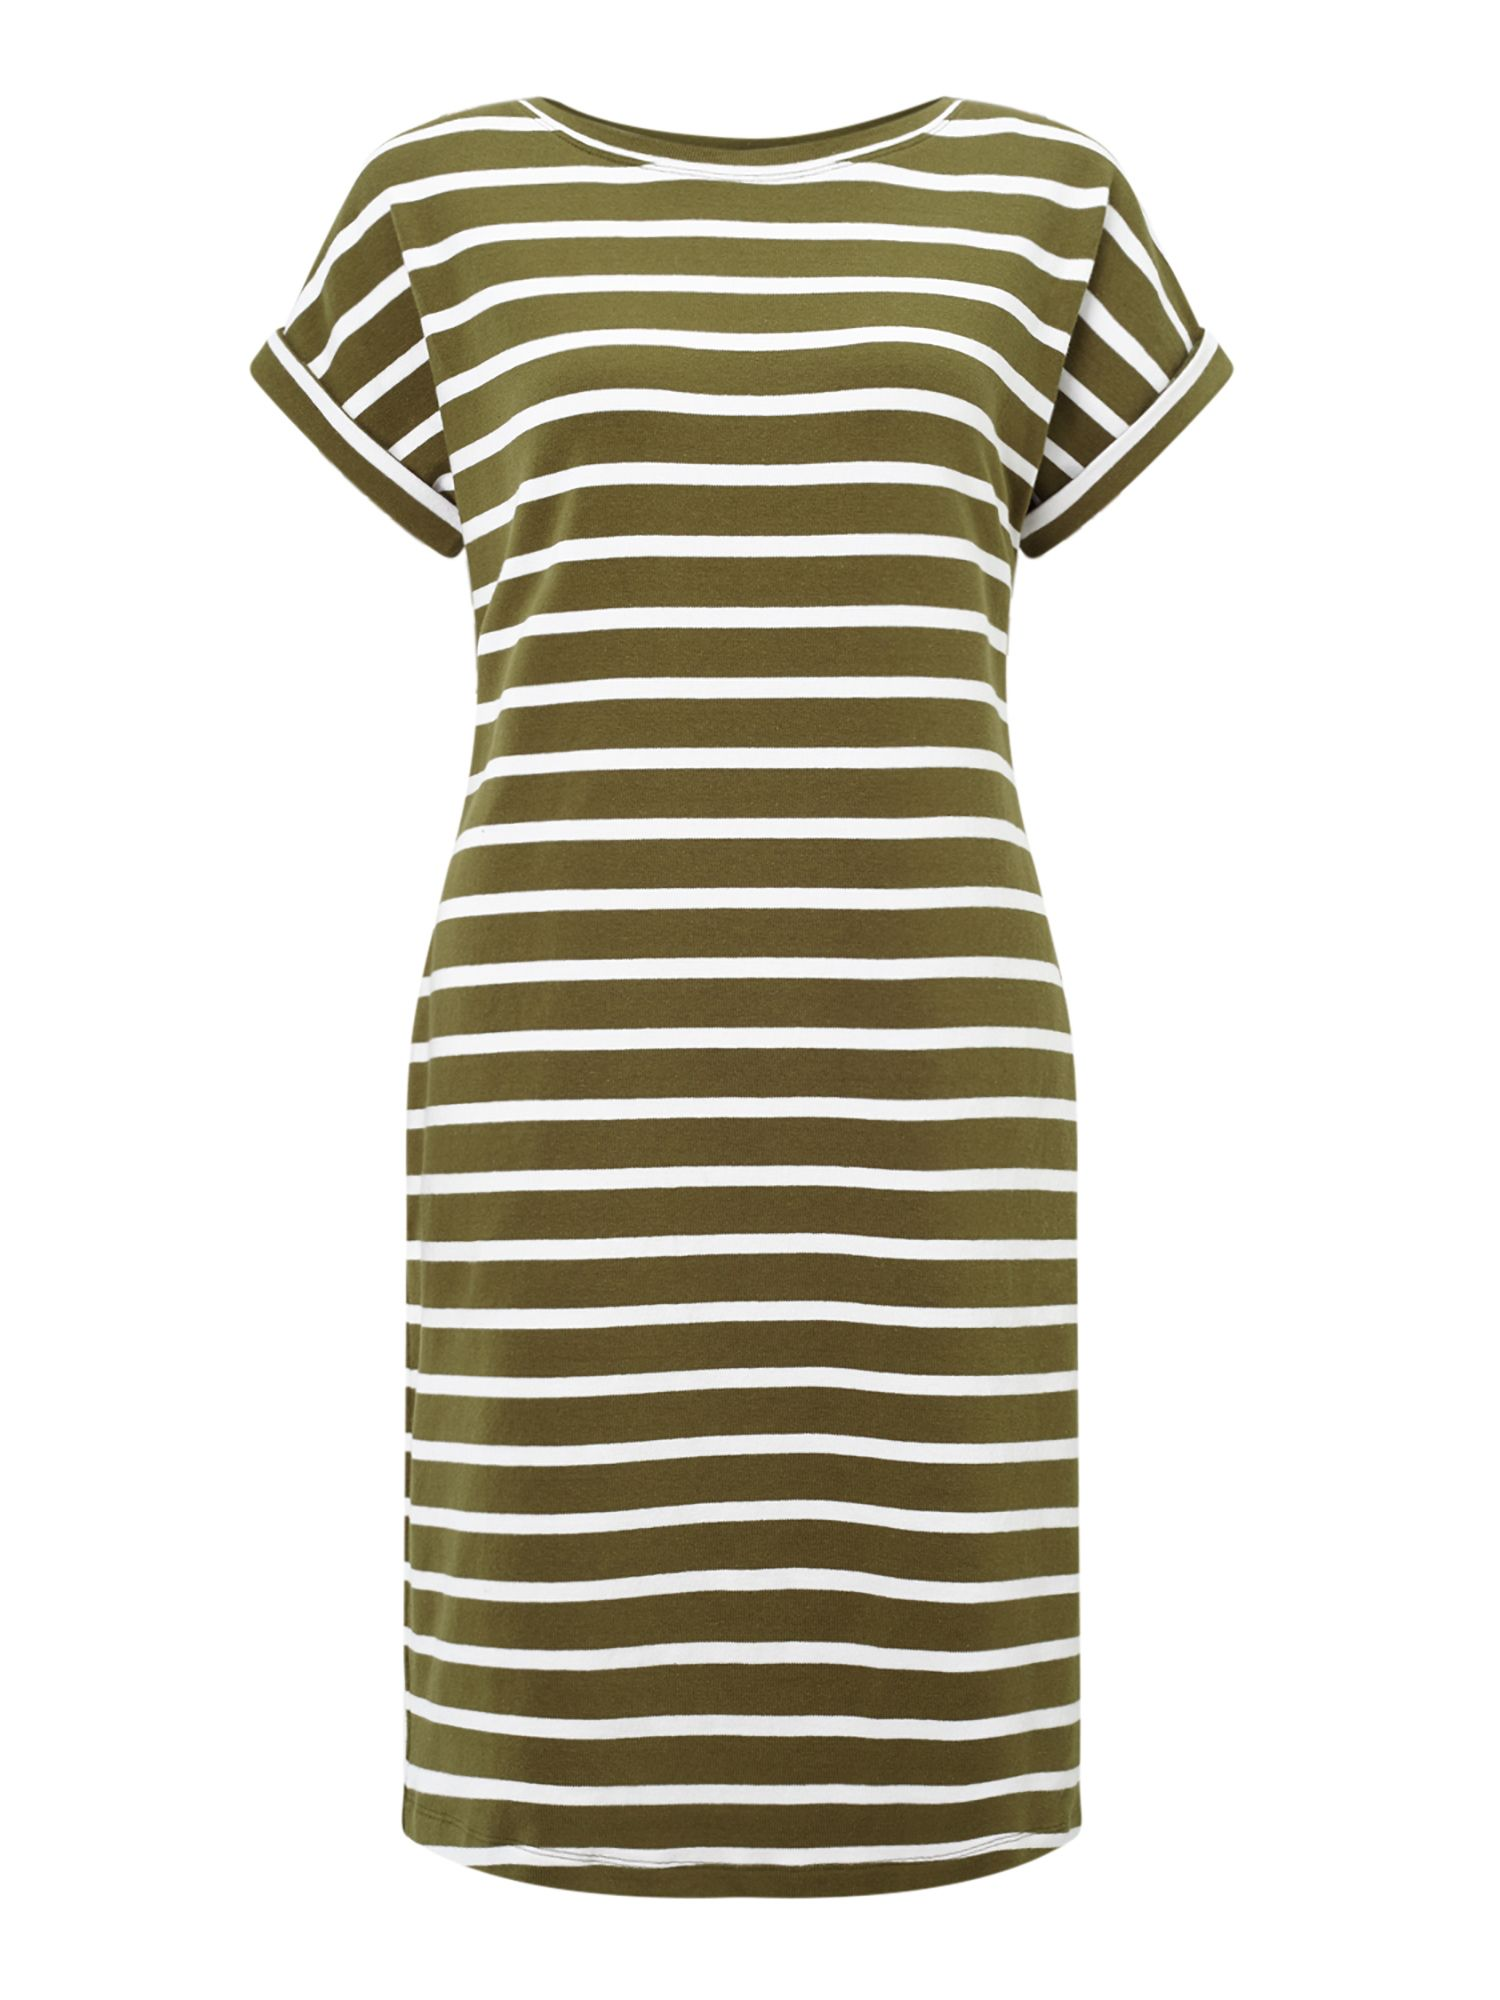 Jigsaw T Shirt S/s Breton Dress, Green